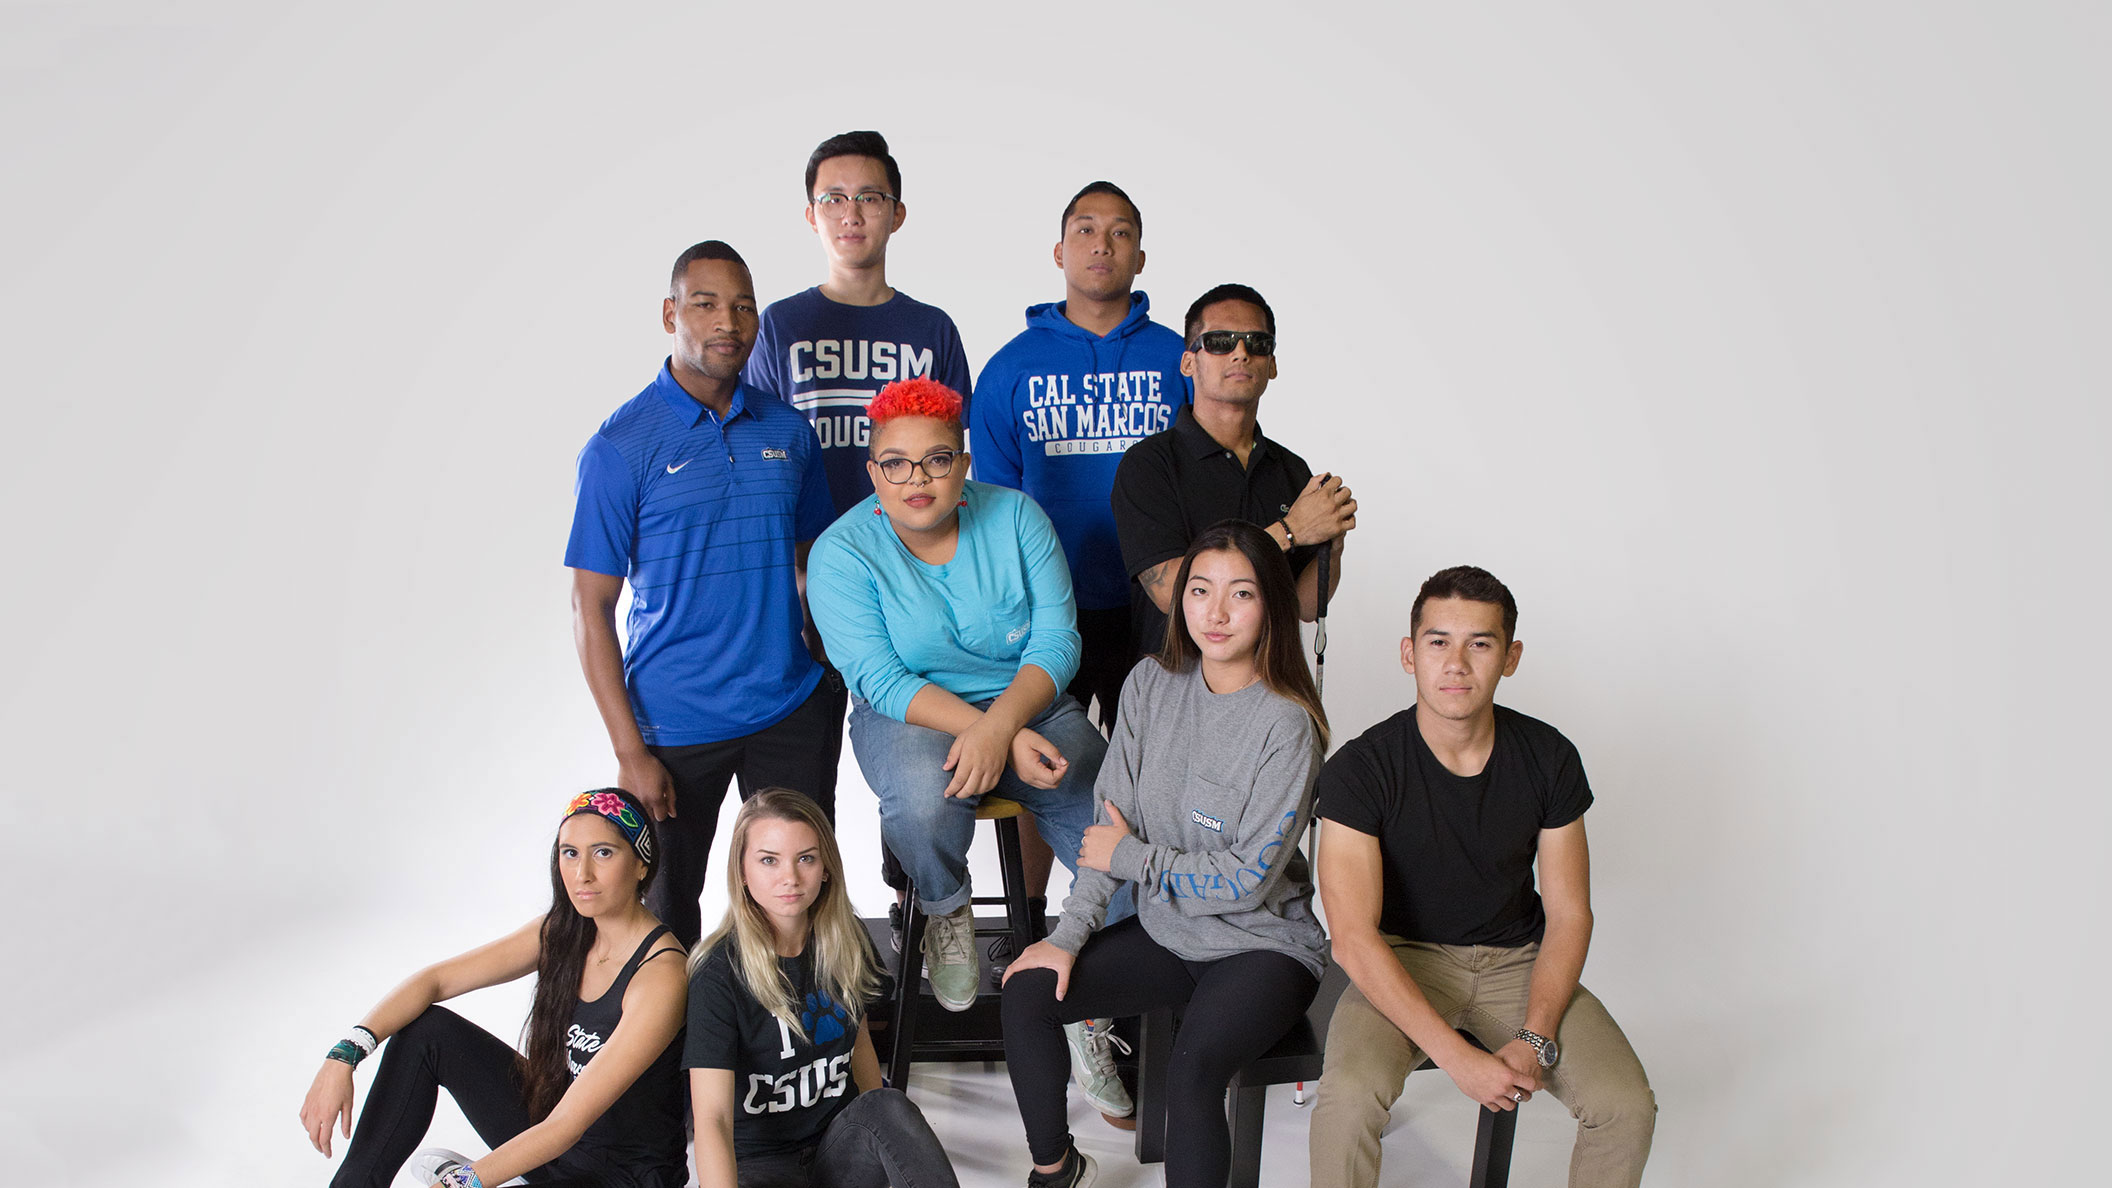 CSUSM students share their diverse identities in a photo shoot